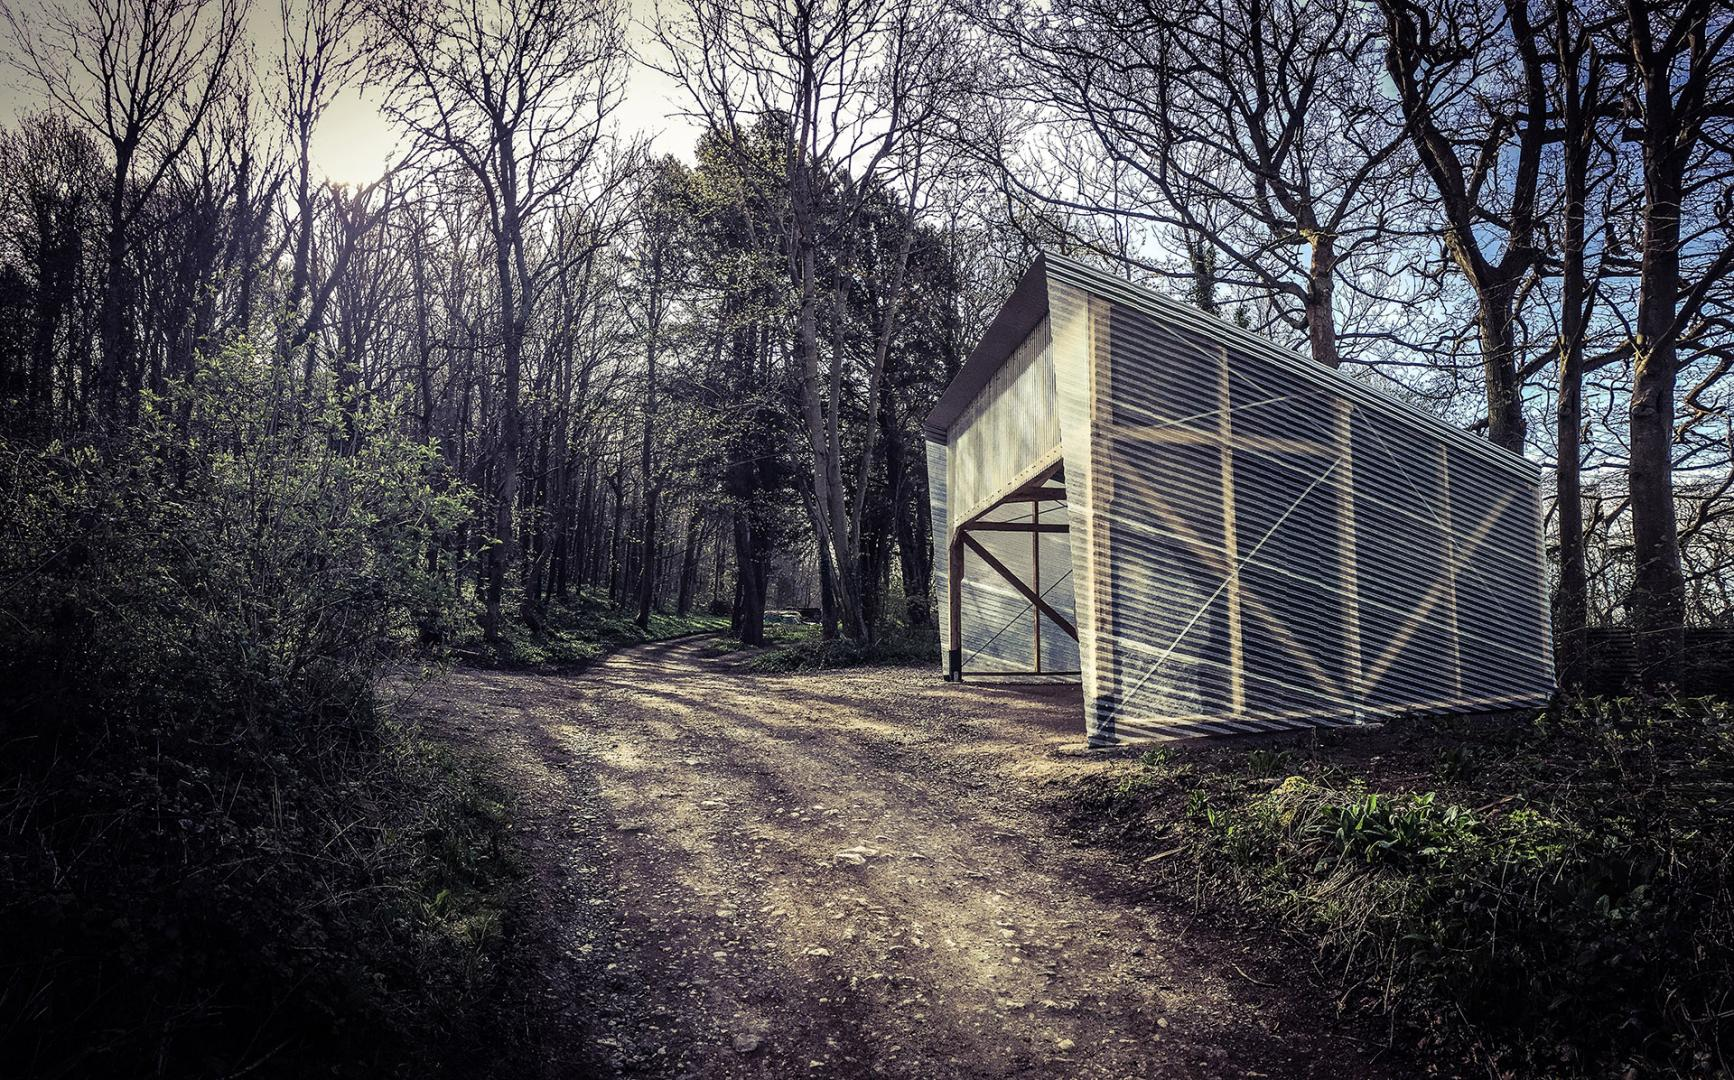 Laboratory among the trees with wooden structure and walls in corrugated steel